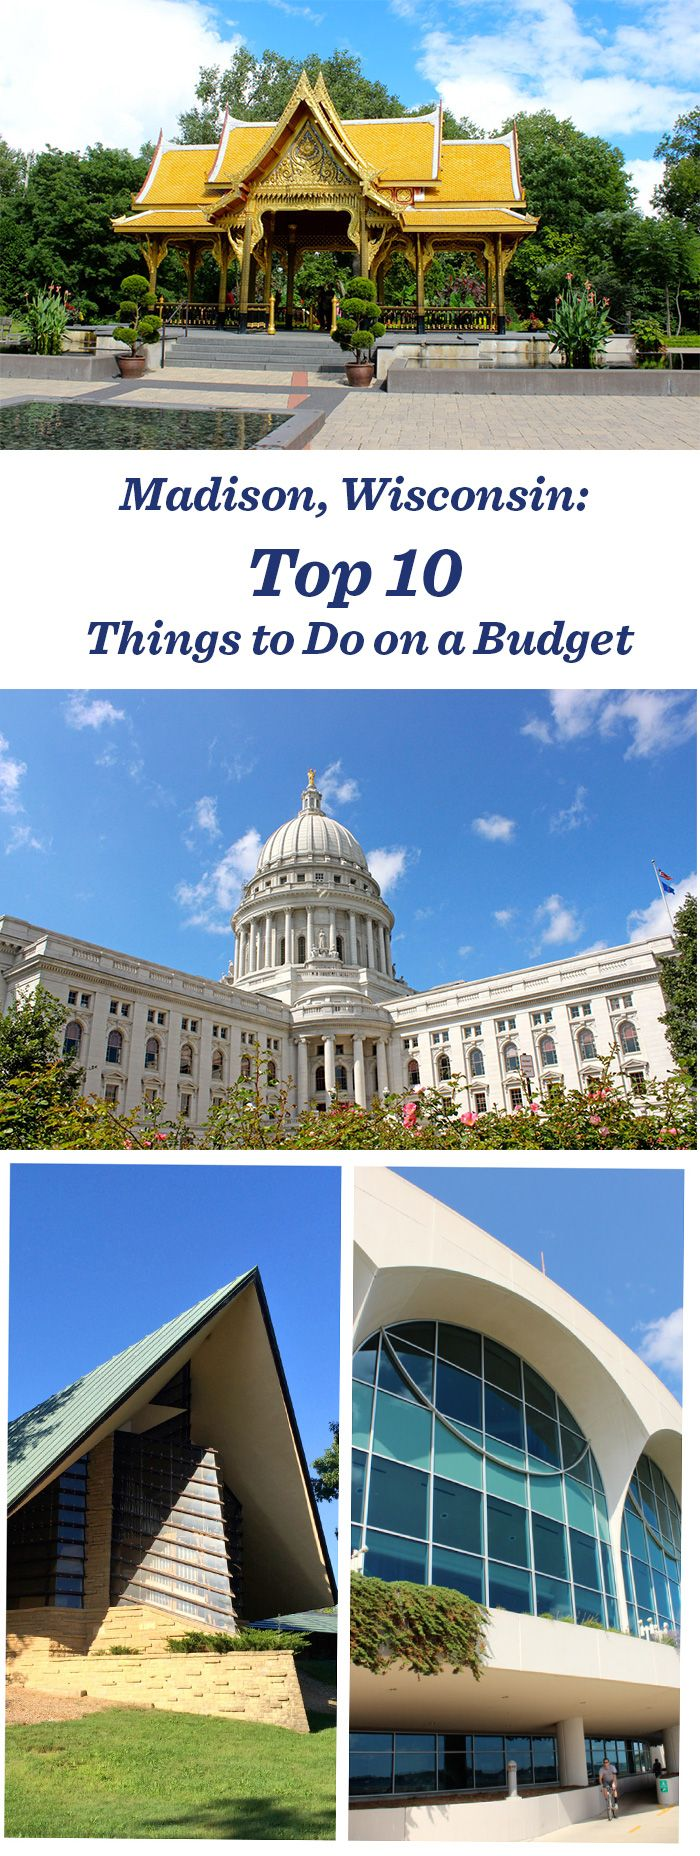 10 great things to do on a budget in Madison, Wisconsin…